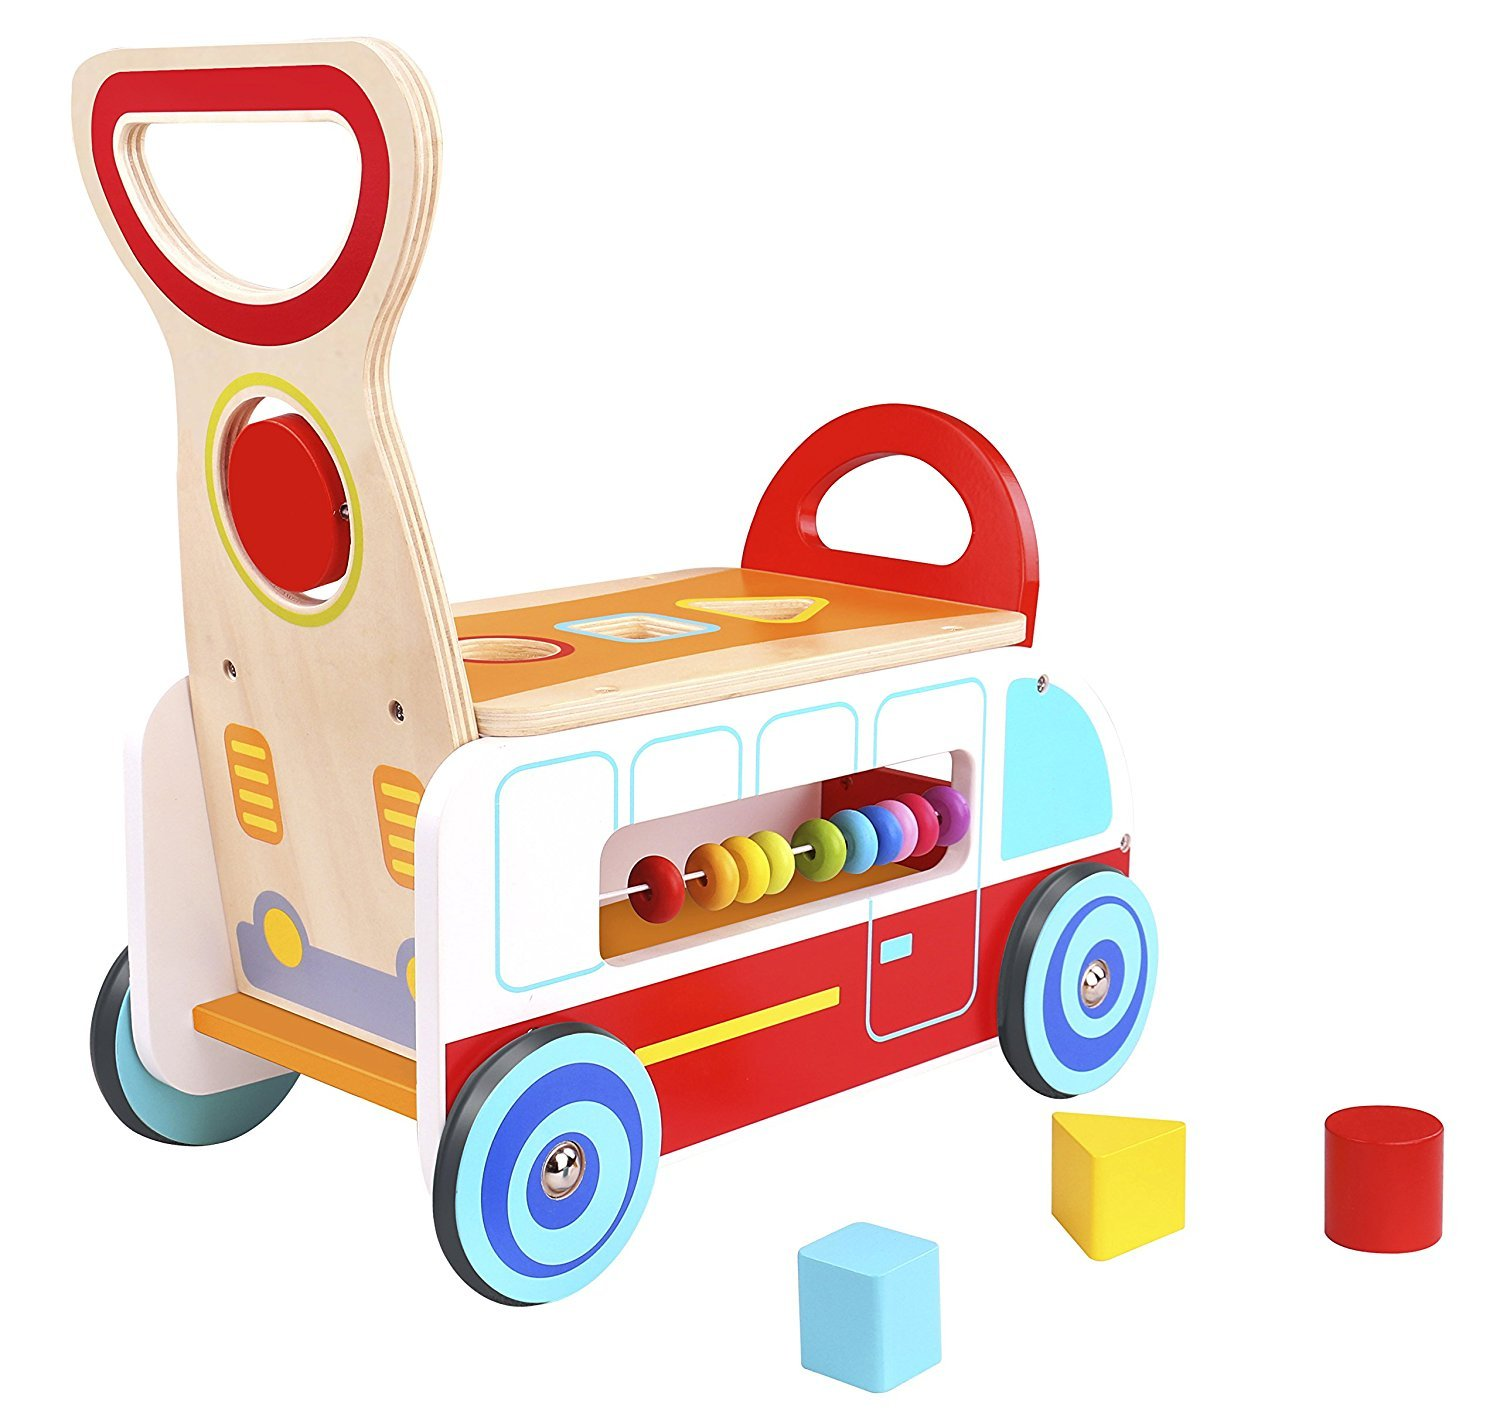 Pidoko Kids Wooden Ride On Multi Functional Baby Wagon - Wooden Push and Pull Peddle Scoot Balance Bike Walker Cart Toy for Boys & Girls, Toddlers age 18 months and up